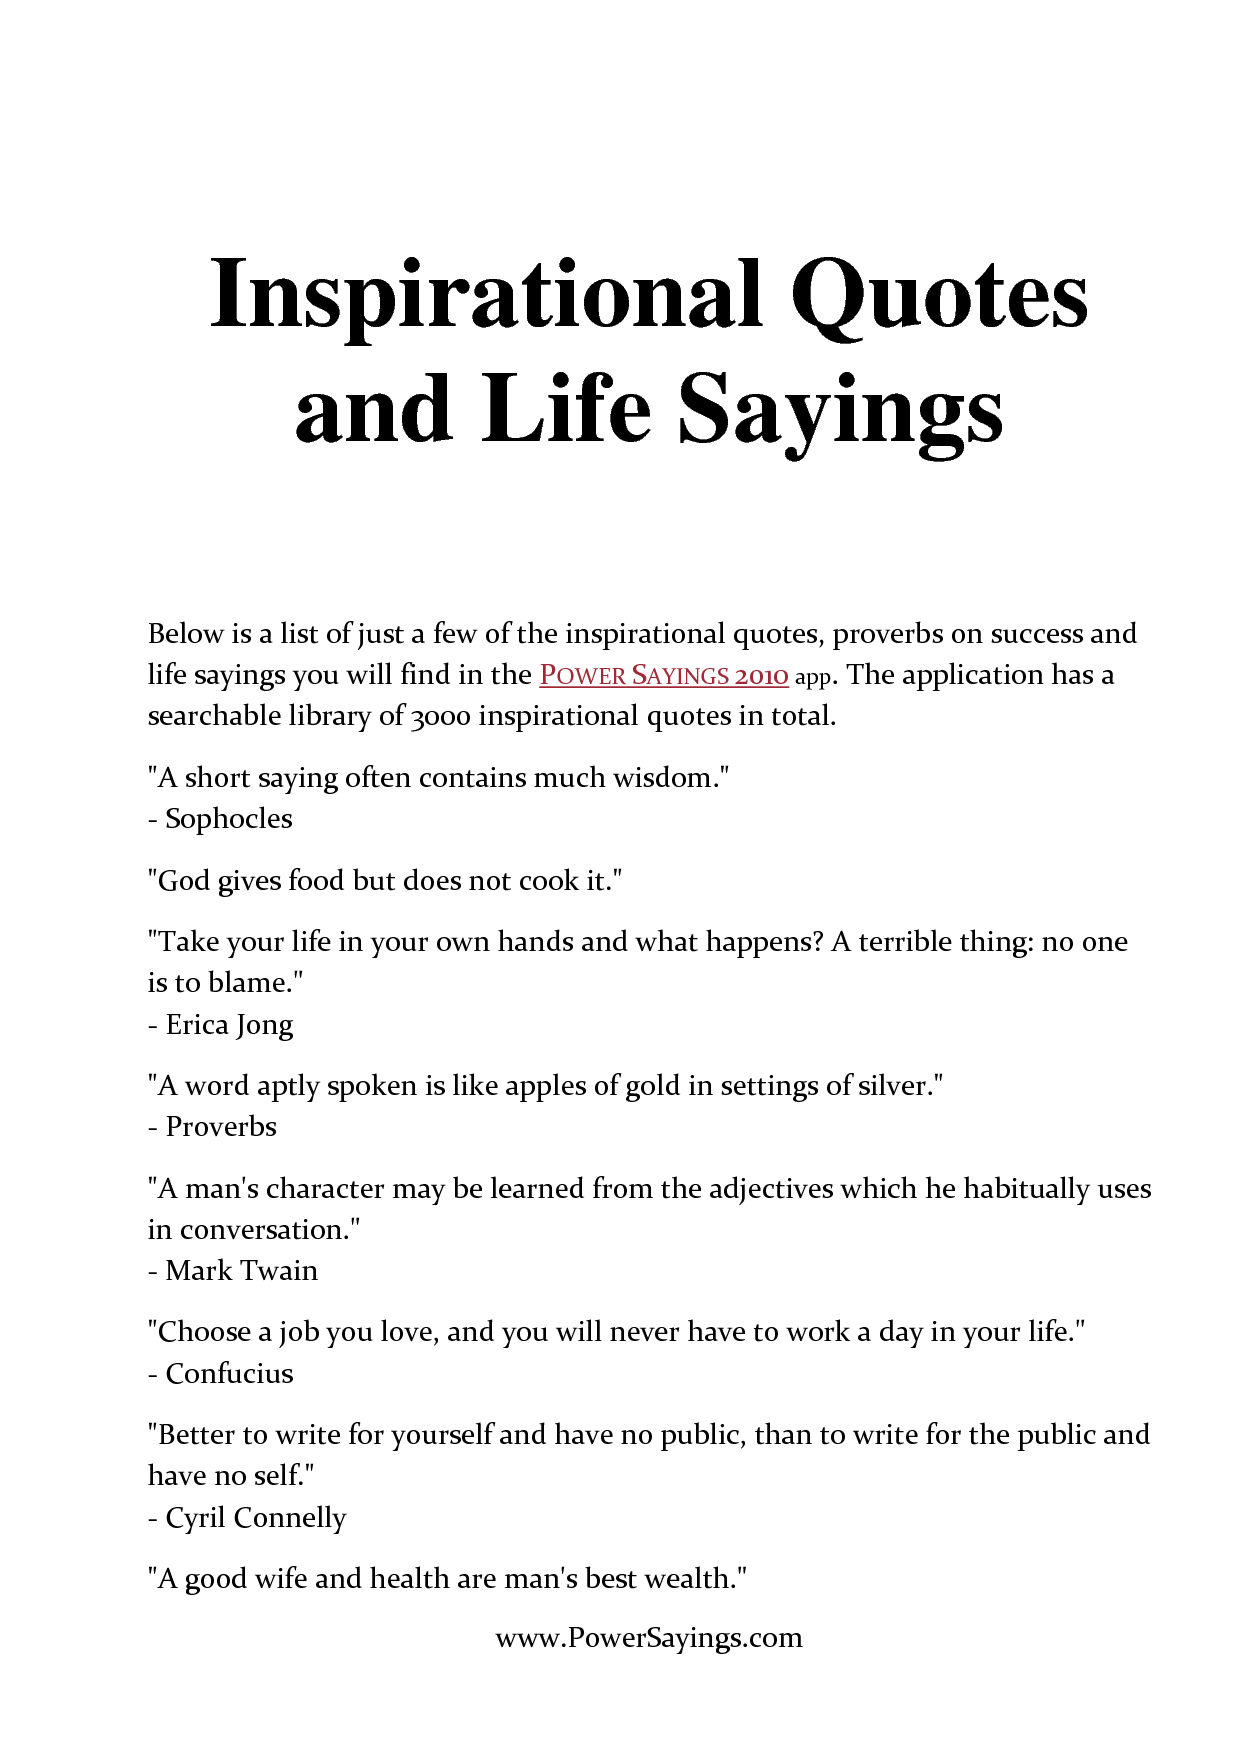 List Of Inspirational Quotes About Life Stunning List Of Inspirational Quotes About Life 01  Quotesbae